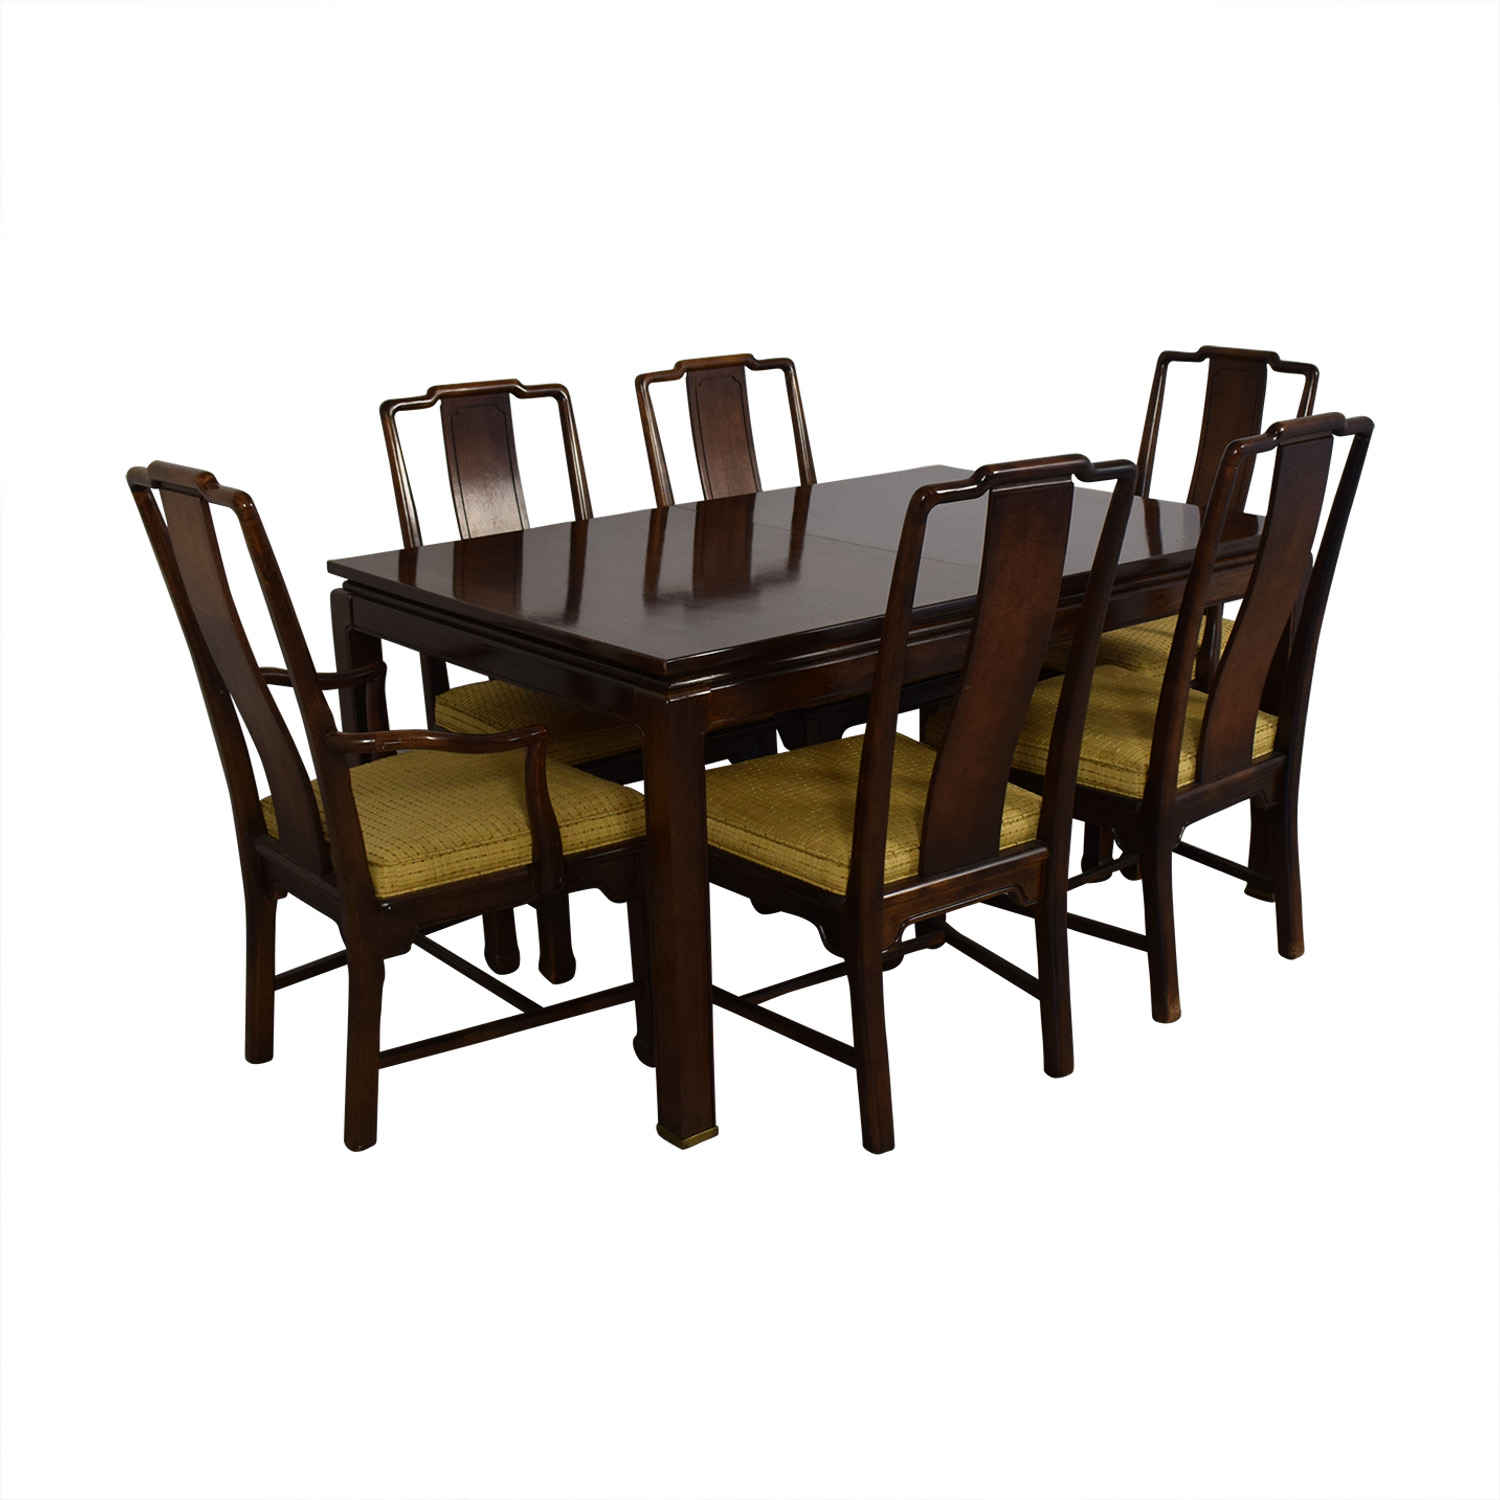 shop American Of Martinsville Dining Room Table And Chairs American of Martinsville